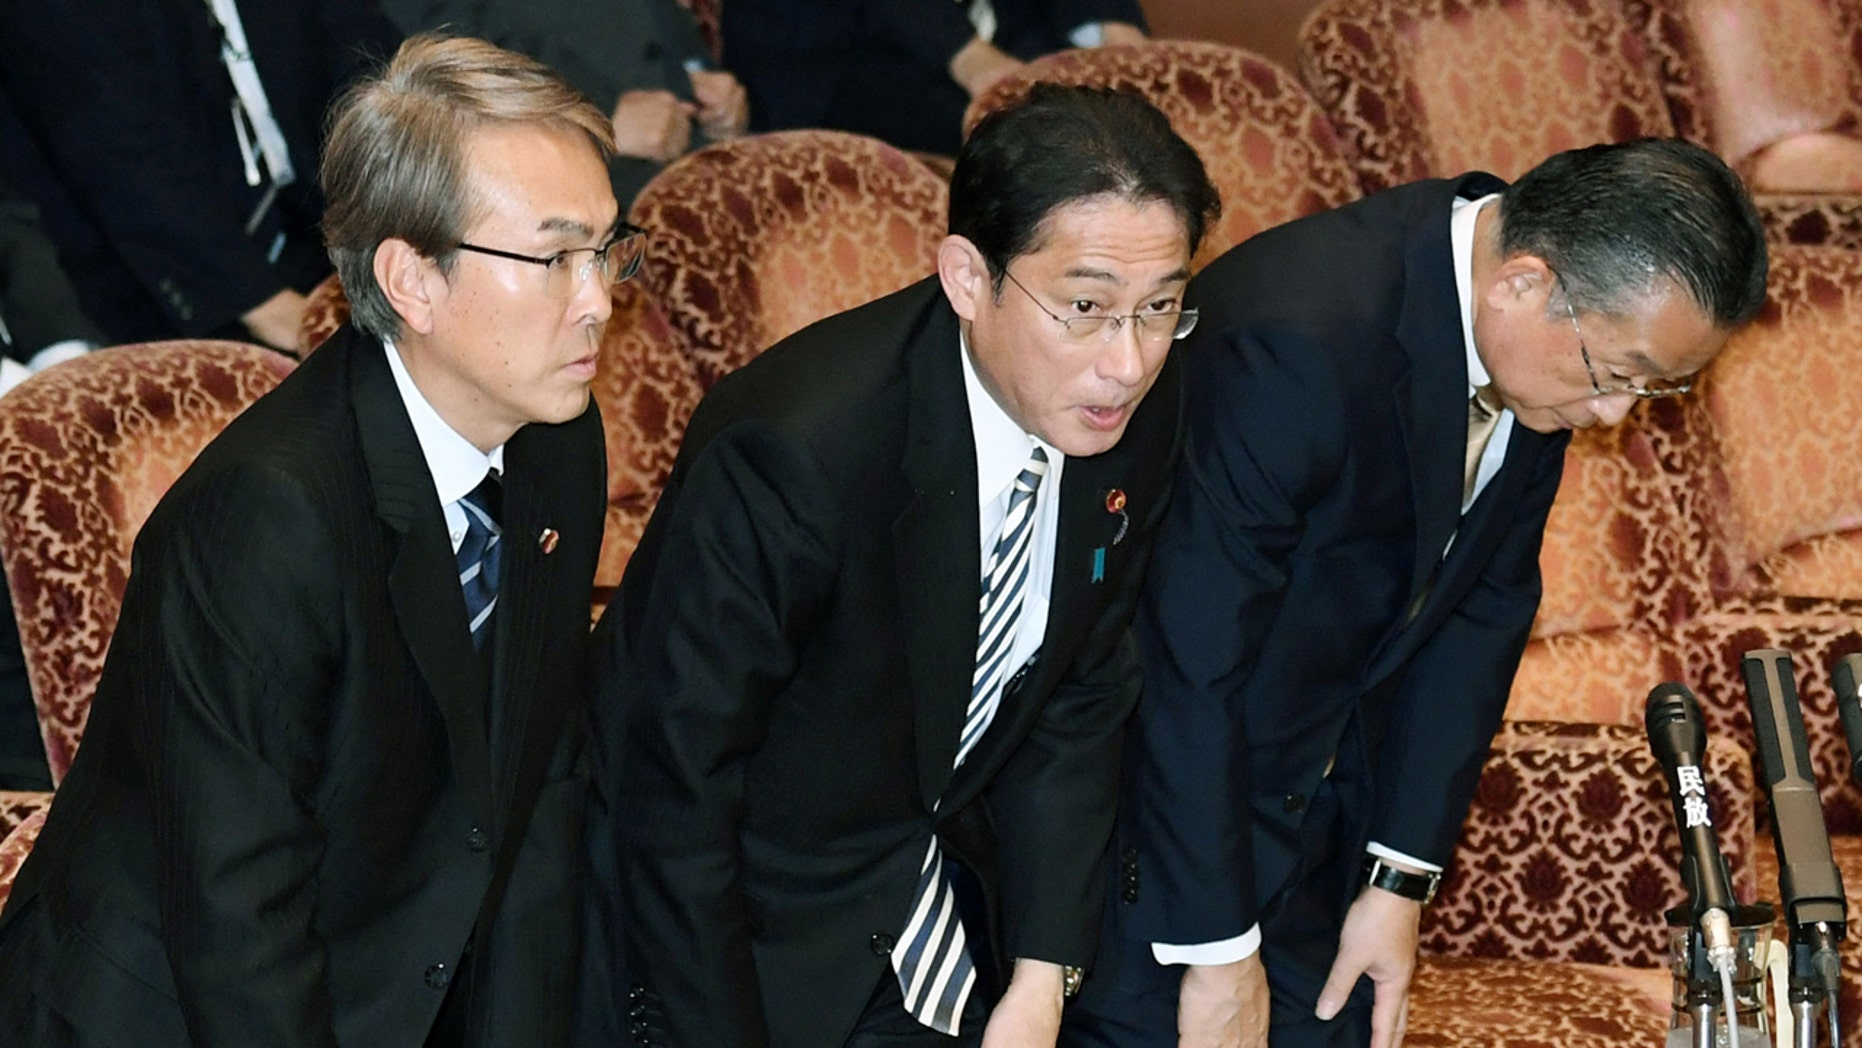 Japanese Economic Revitalization Minister Nobuteru Ishihara, Foreign Minister Fumio Kishida and Agriculture Minister Yuji Yamamoto, from left, bow after the Trans-Pacific Partnership (TPP) was approved during a special committee at the parliament's upper house in Tokyo Friday, Dec. 9, 2016.